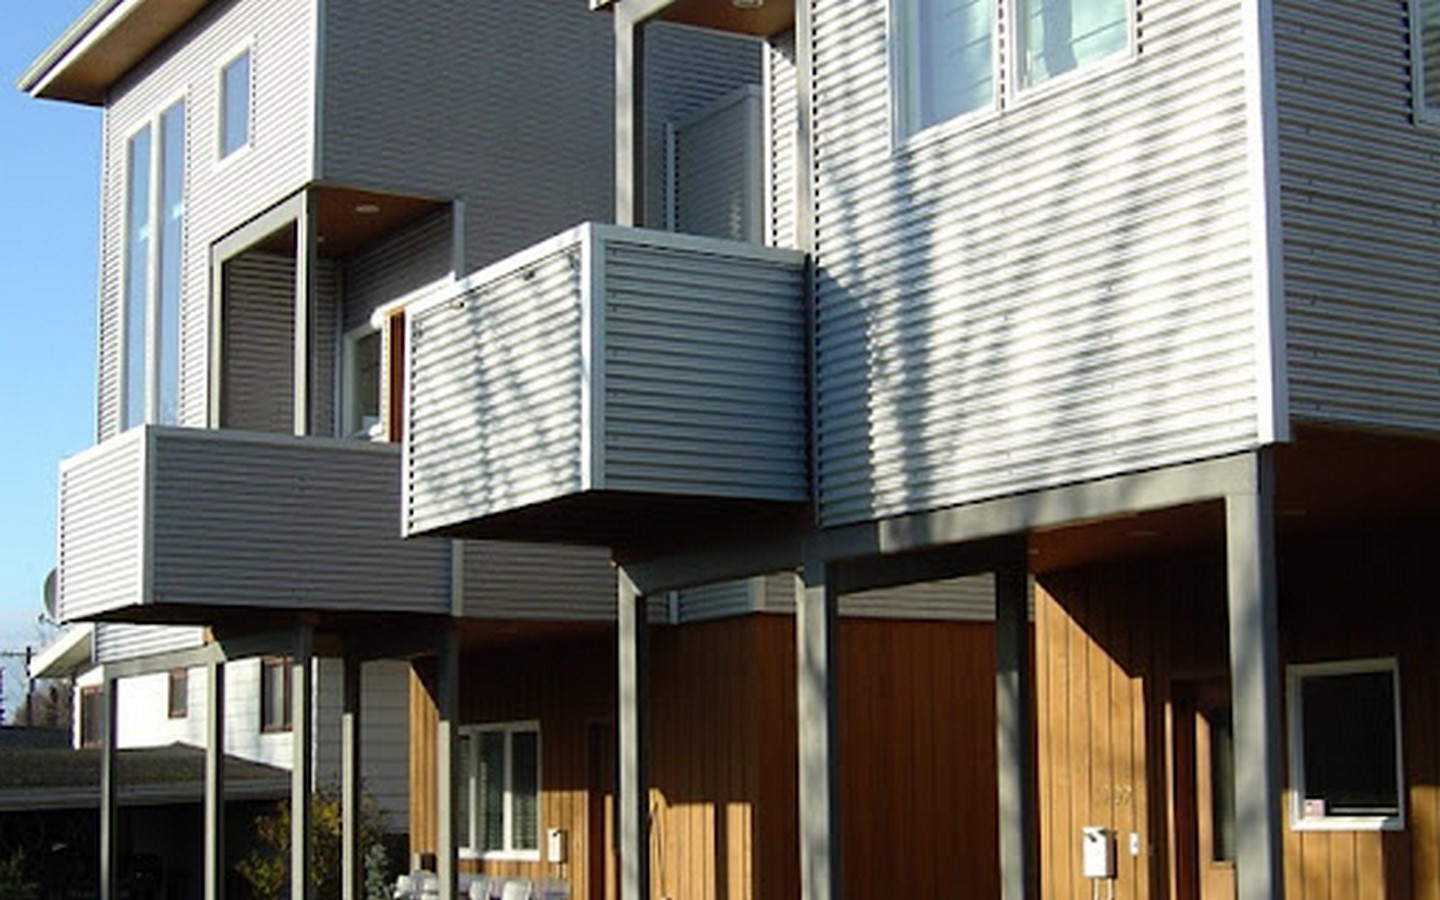 Architects in Anchorage- Top 20 Architects in Anchorage - Sheet1